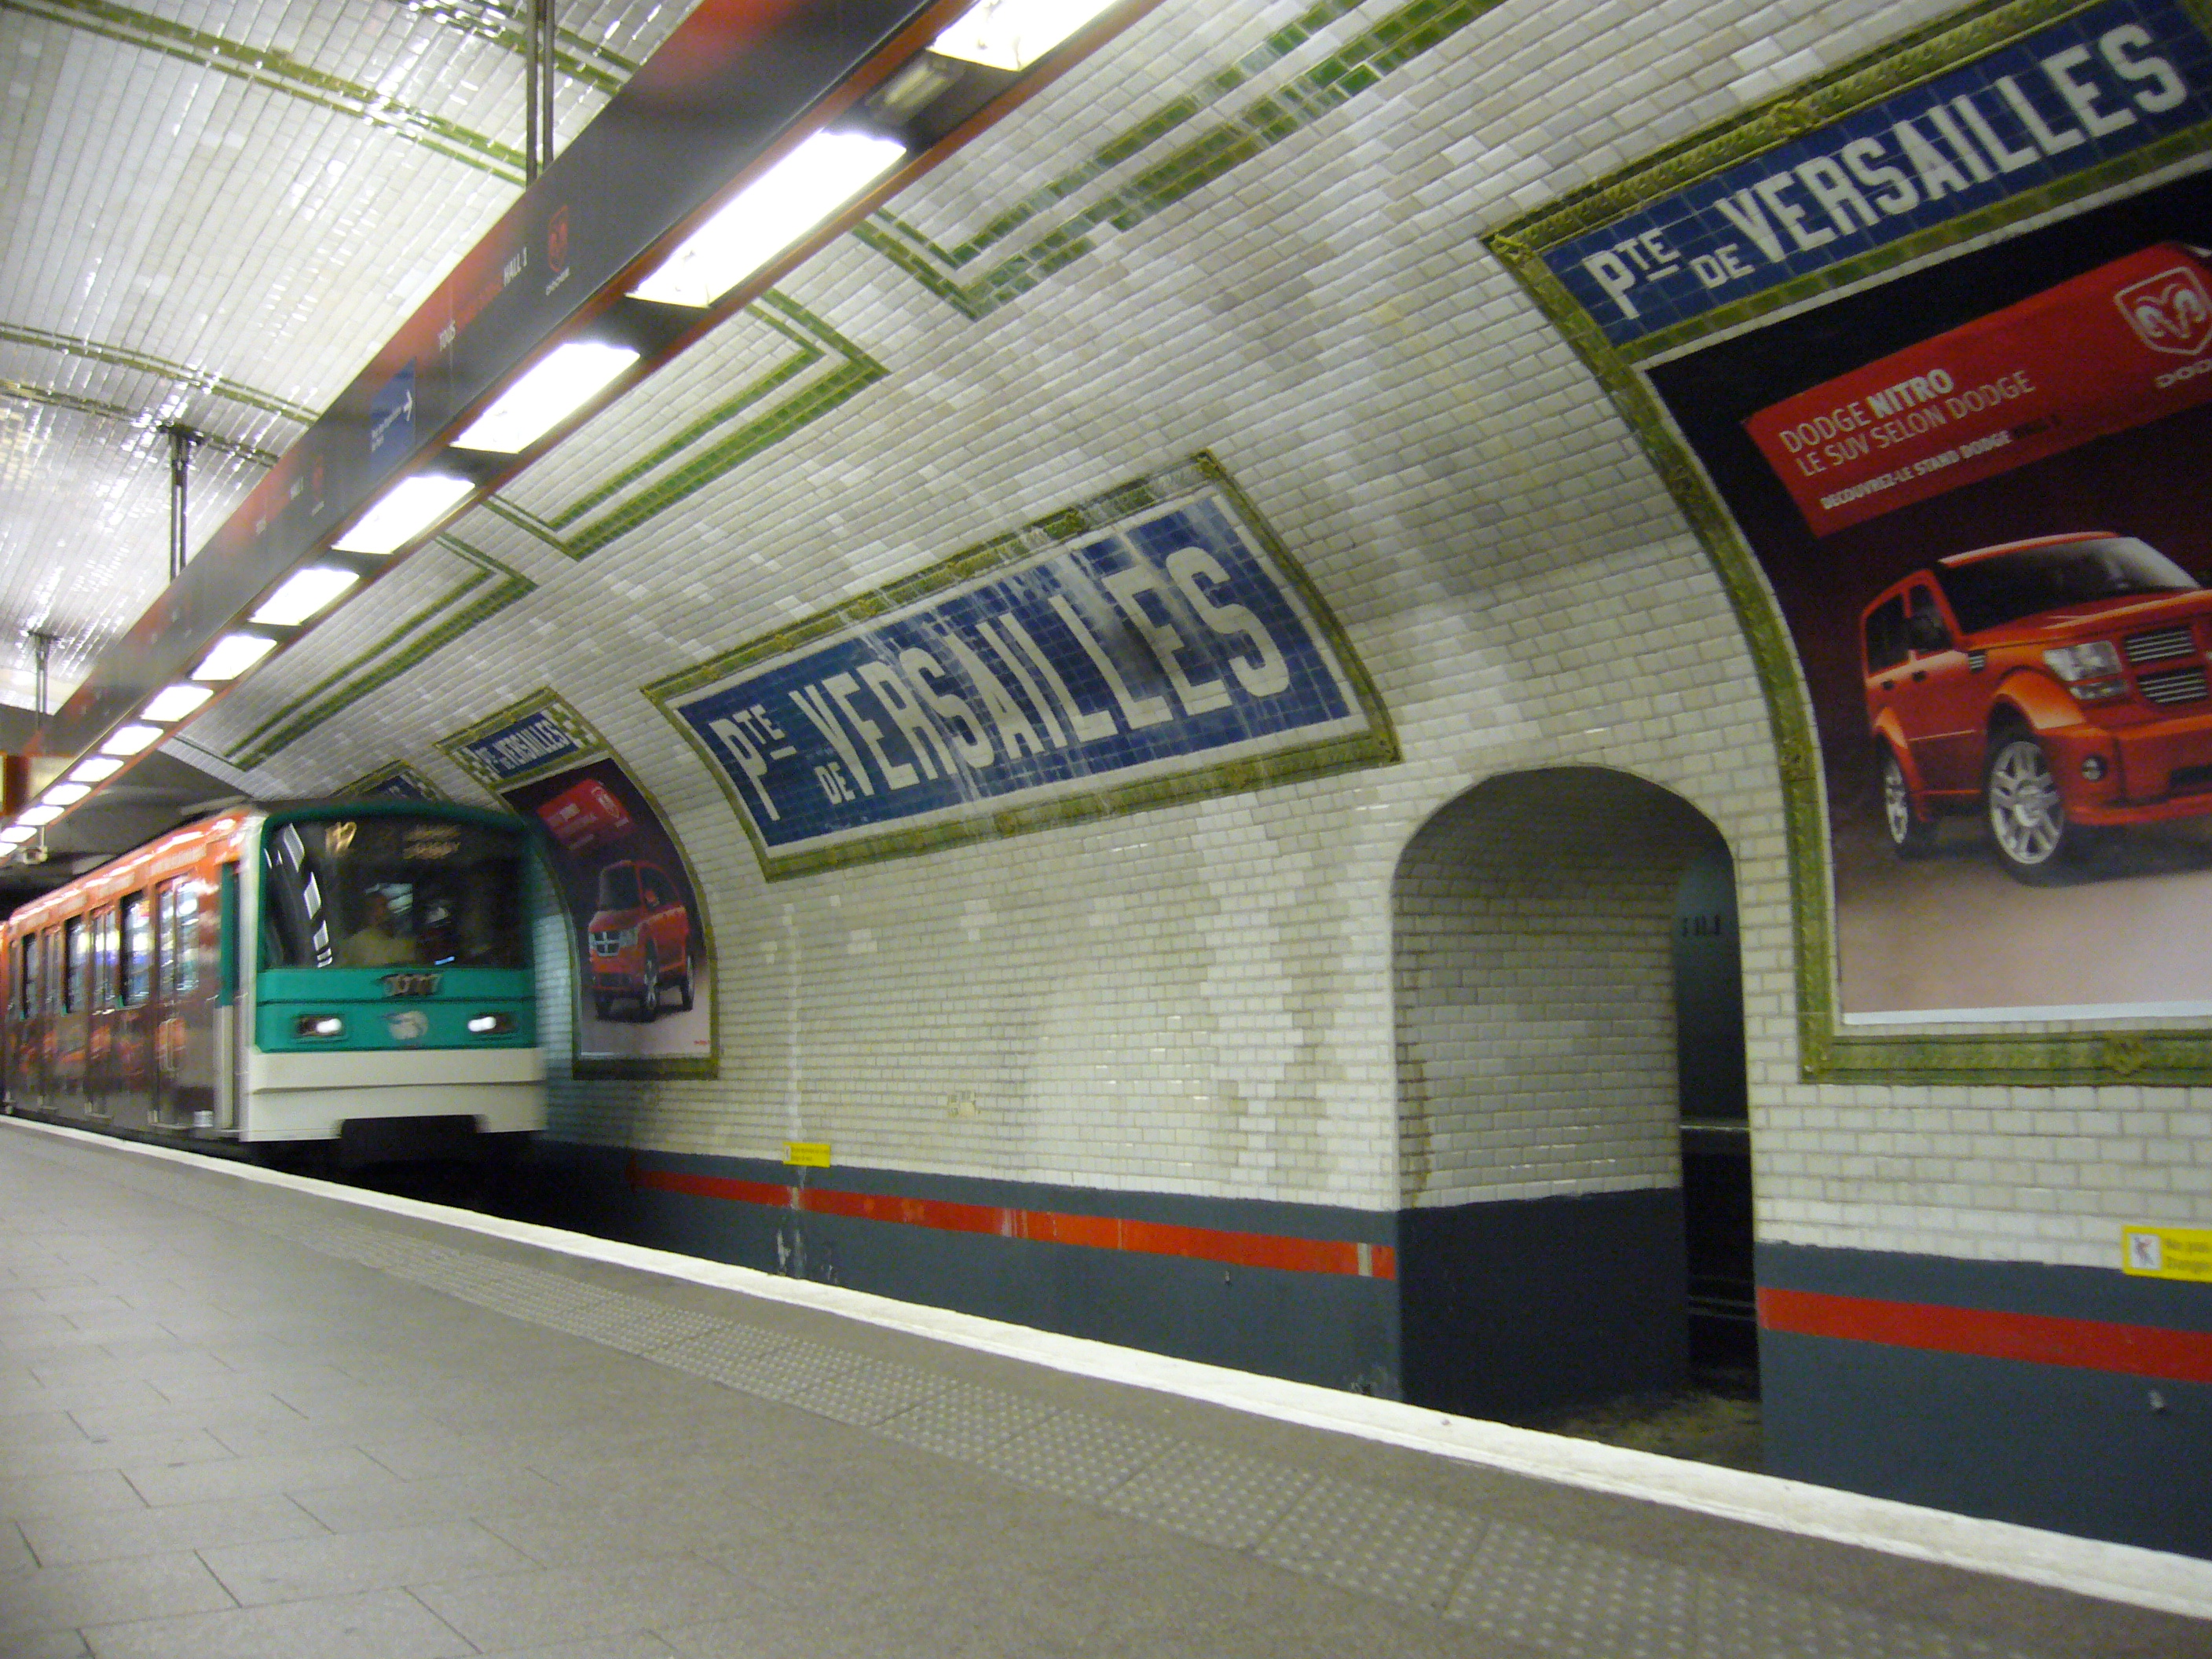 http://upload.wikimedia.org/wikipedia/commons/9/9a/Metro_-_Paris_-_Ligne_12_-_Porte_de_Versailles_-_MF67.jpg